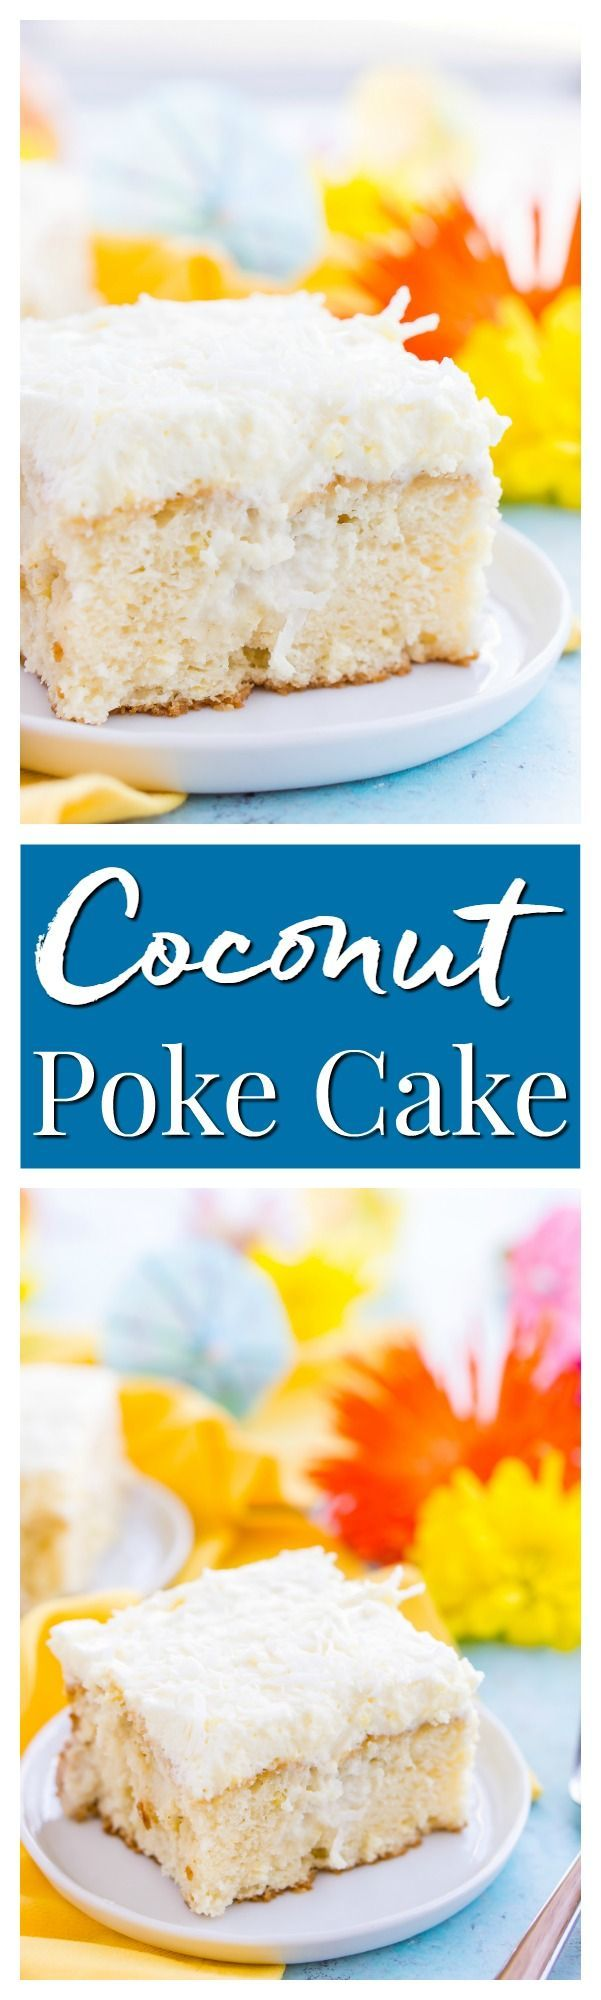 This Coconut Poke Cake is easy to make, loaded with coconut flavor, and the perfect dessert for your spring and summer celebrations.  via /sugarandsoulco/